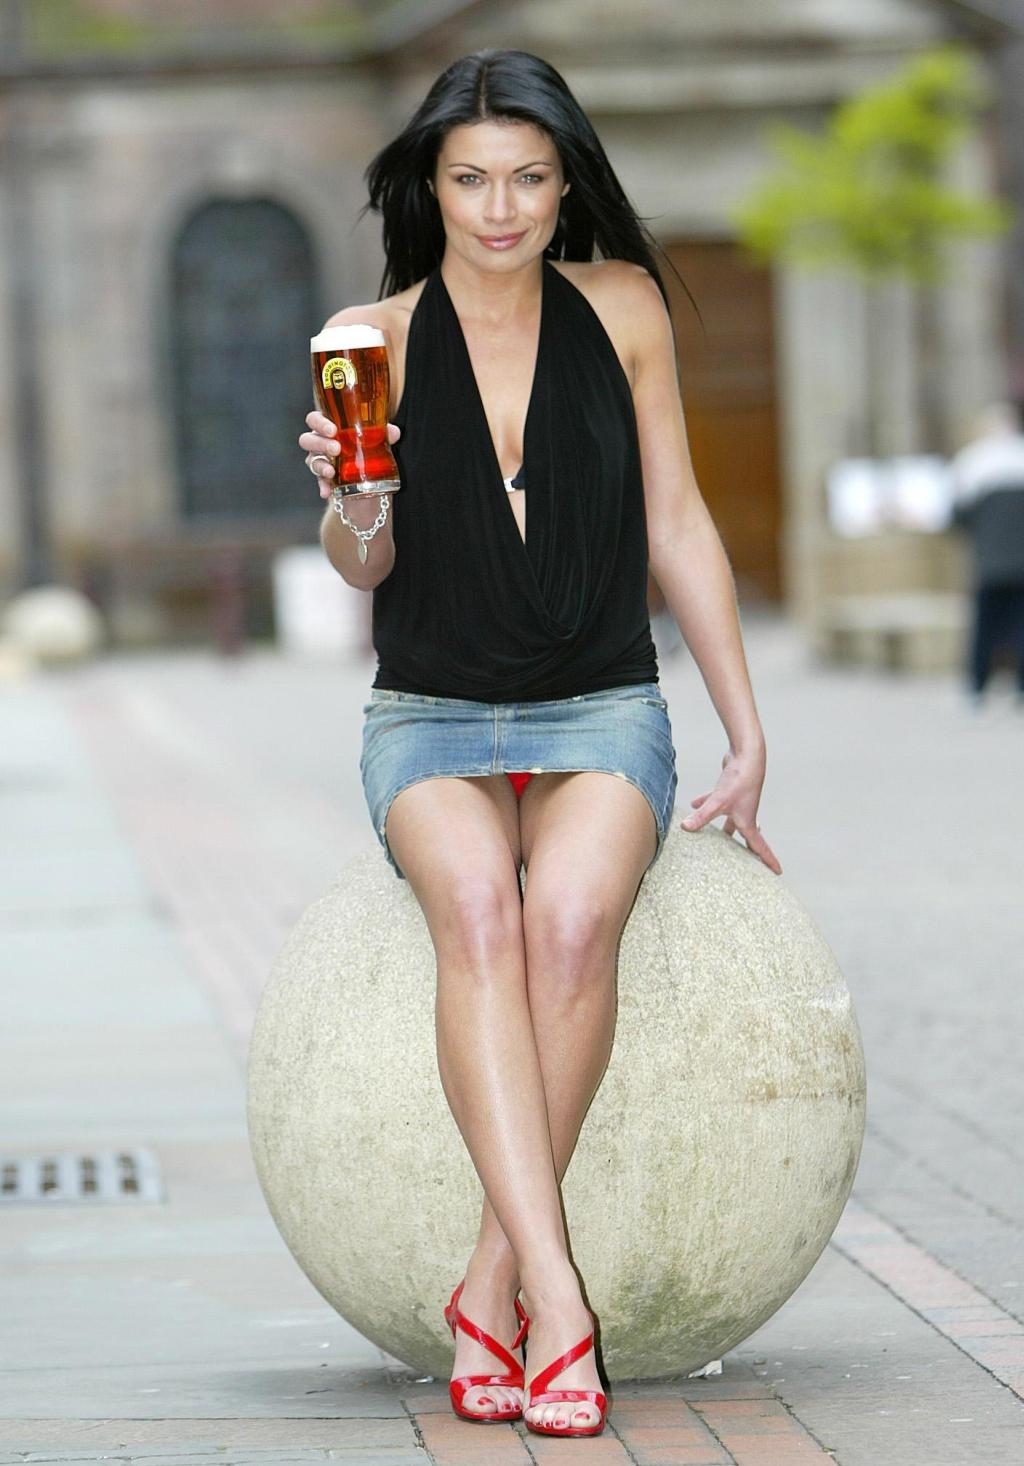 Alison King Hot Photo